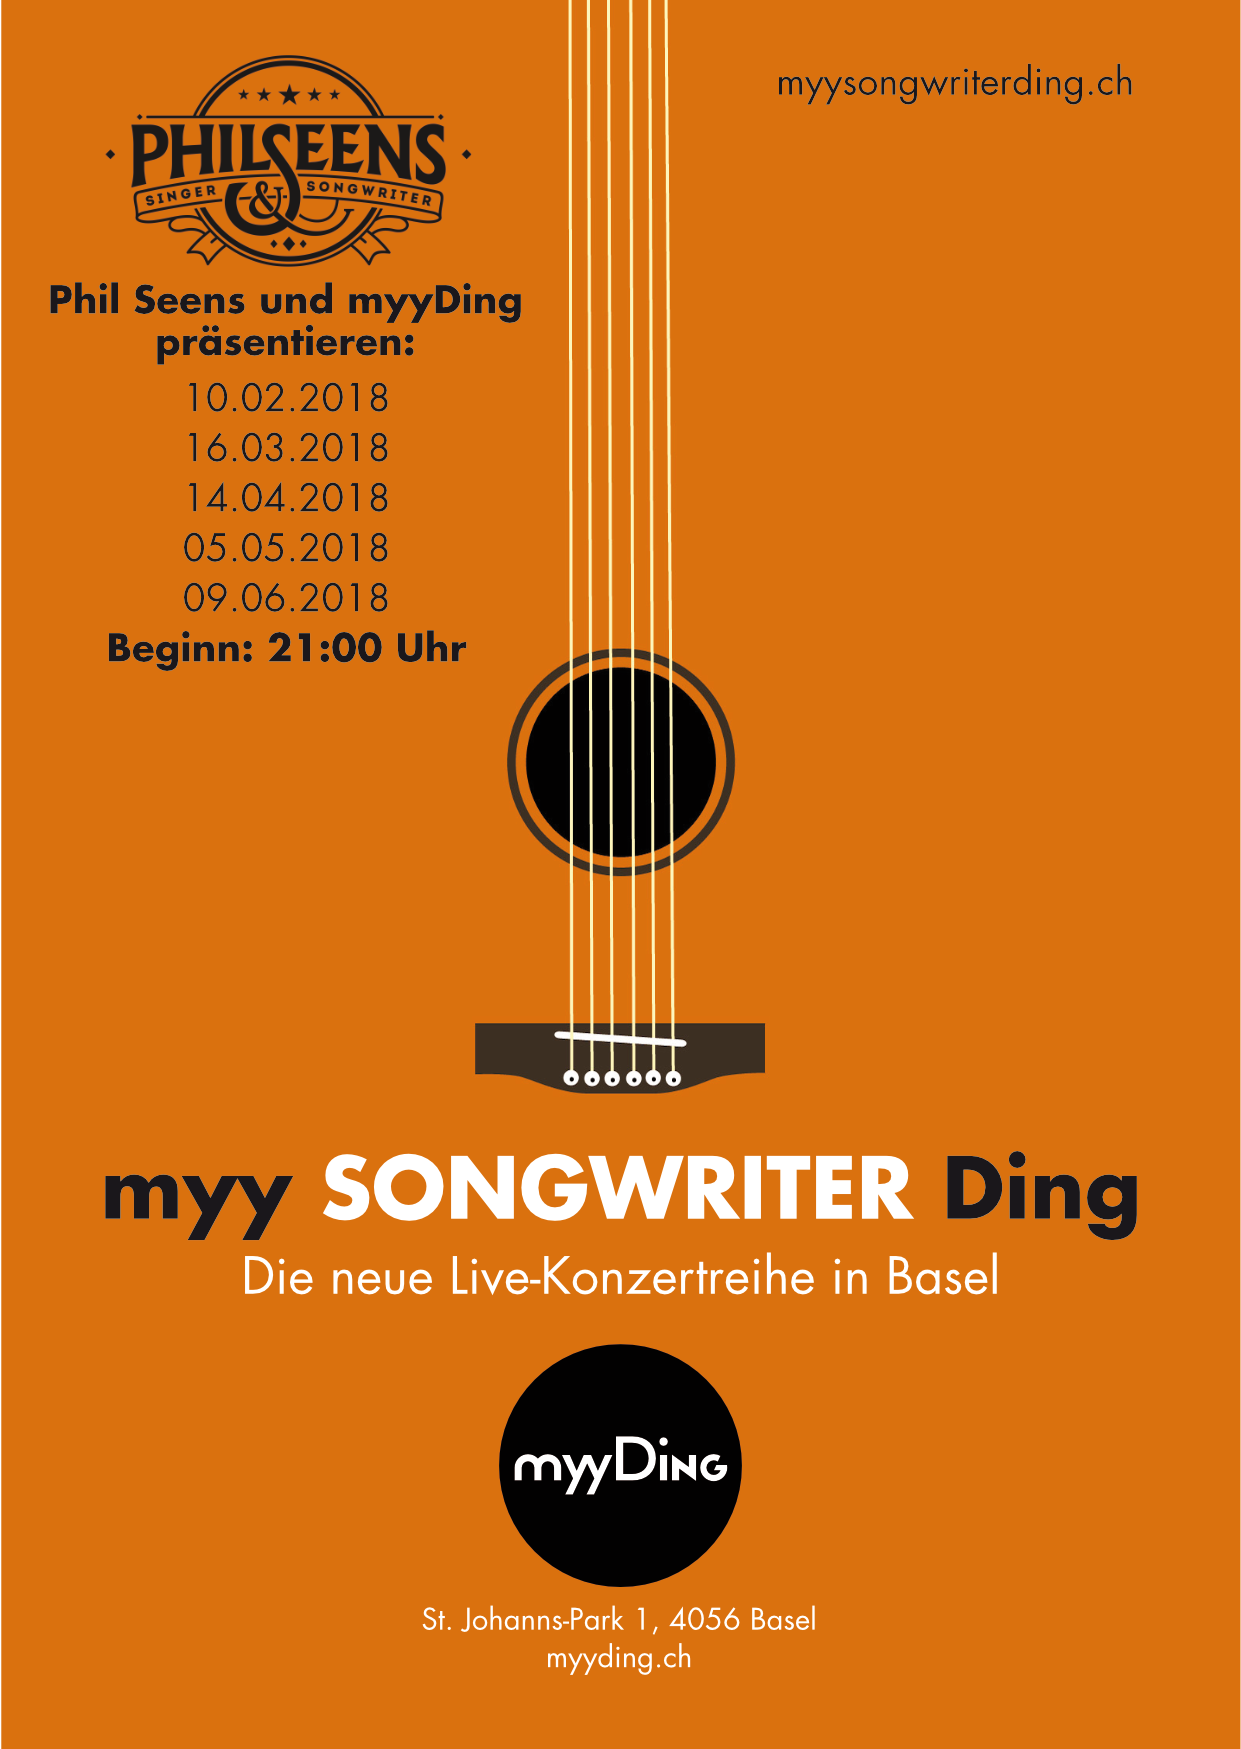 myy Songwriter Ding Frontpng